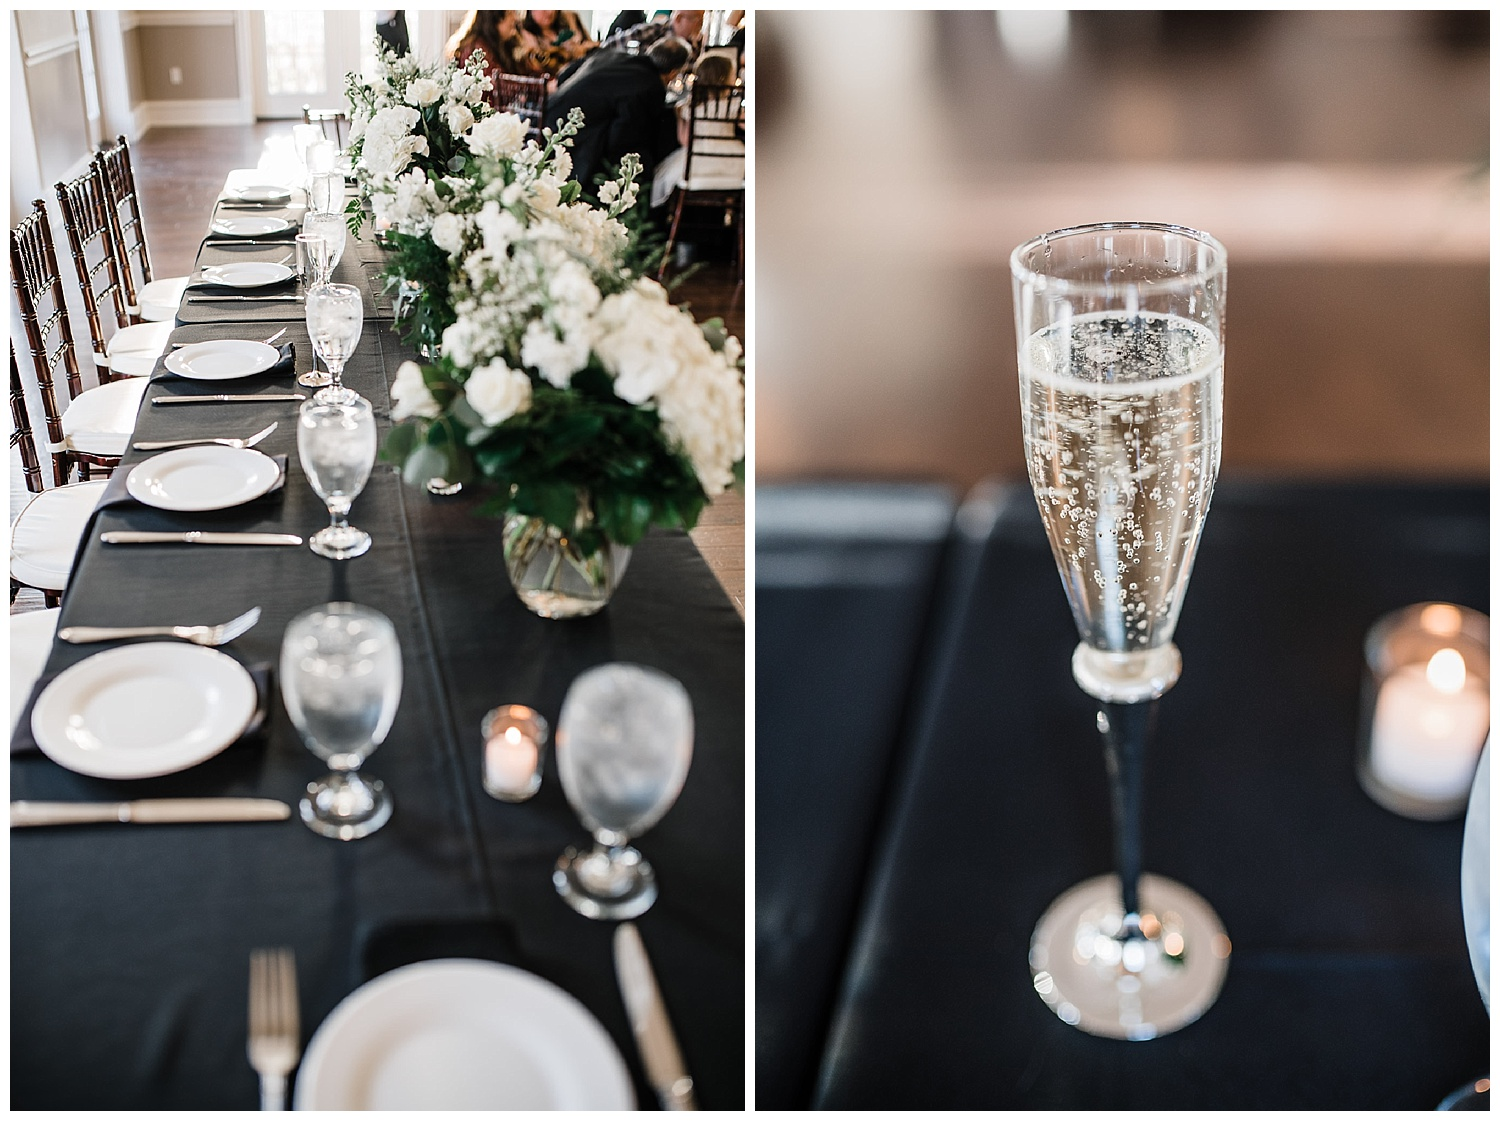 Main table for bride and groom